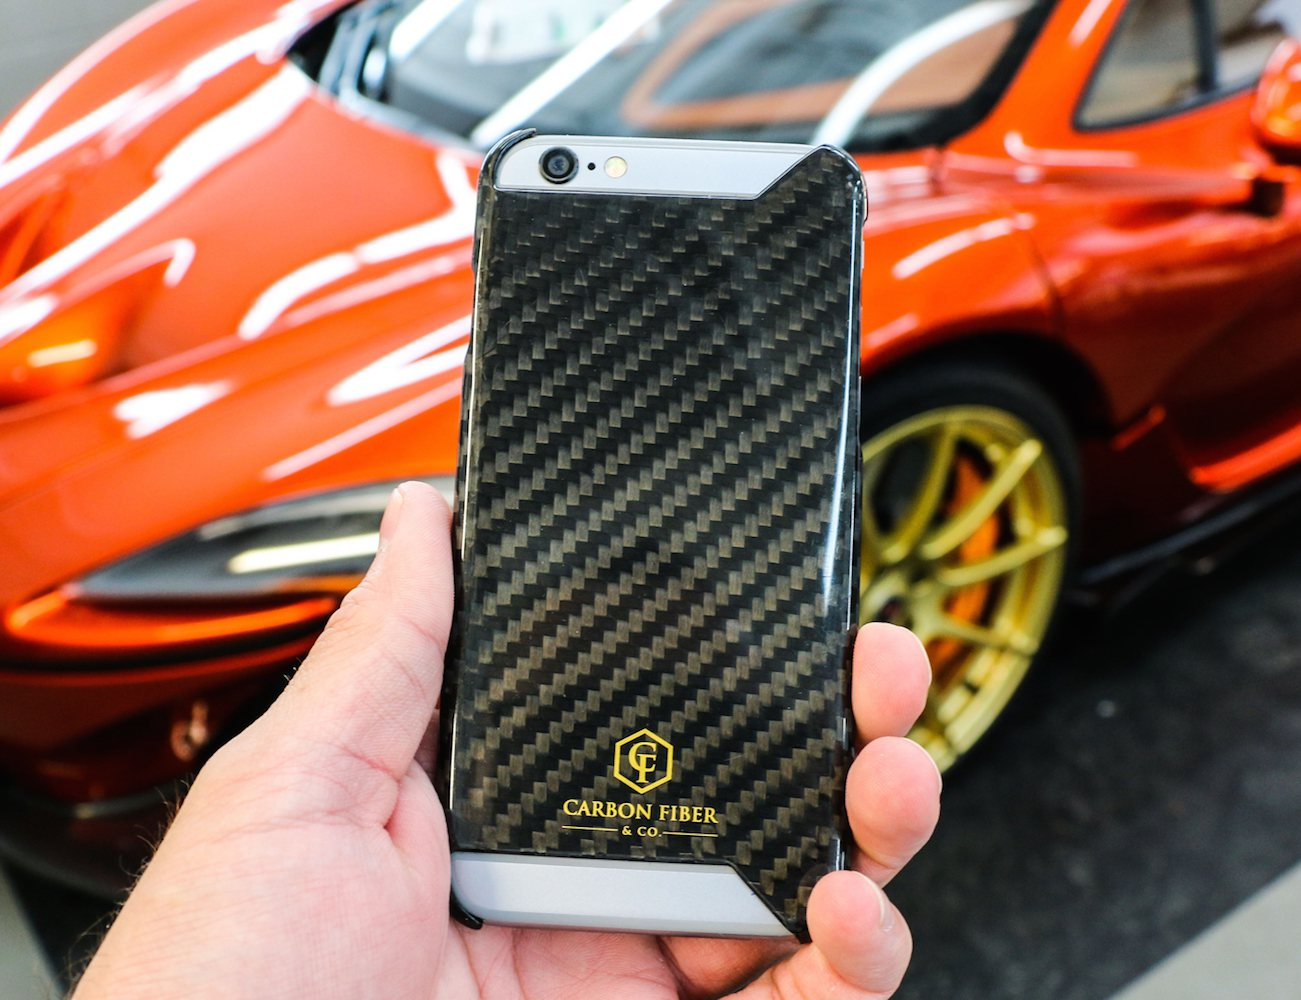 Carbon Fiber iPhone 6 Case by Carbon Fiber & Co.